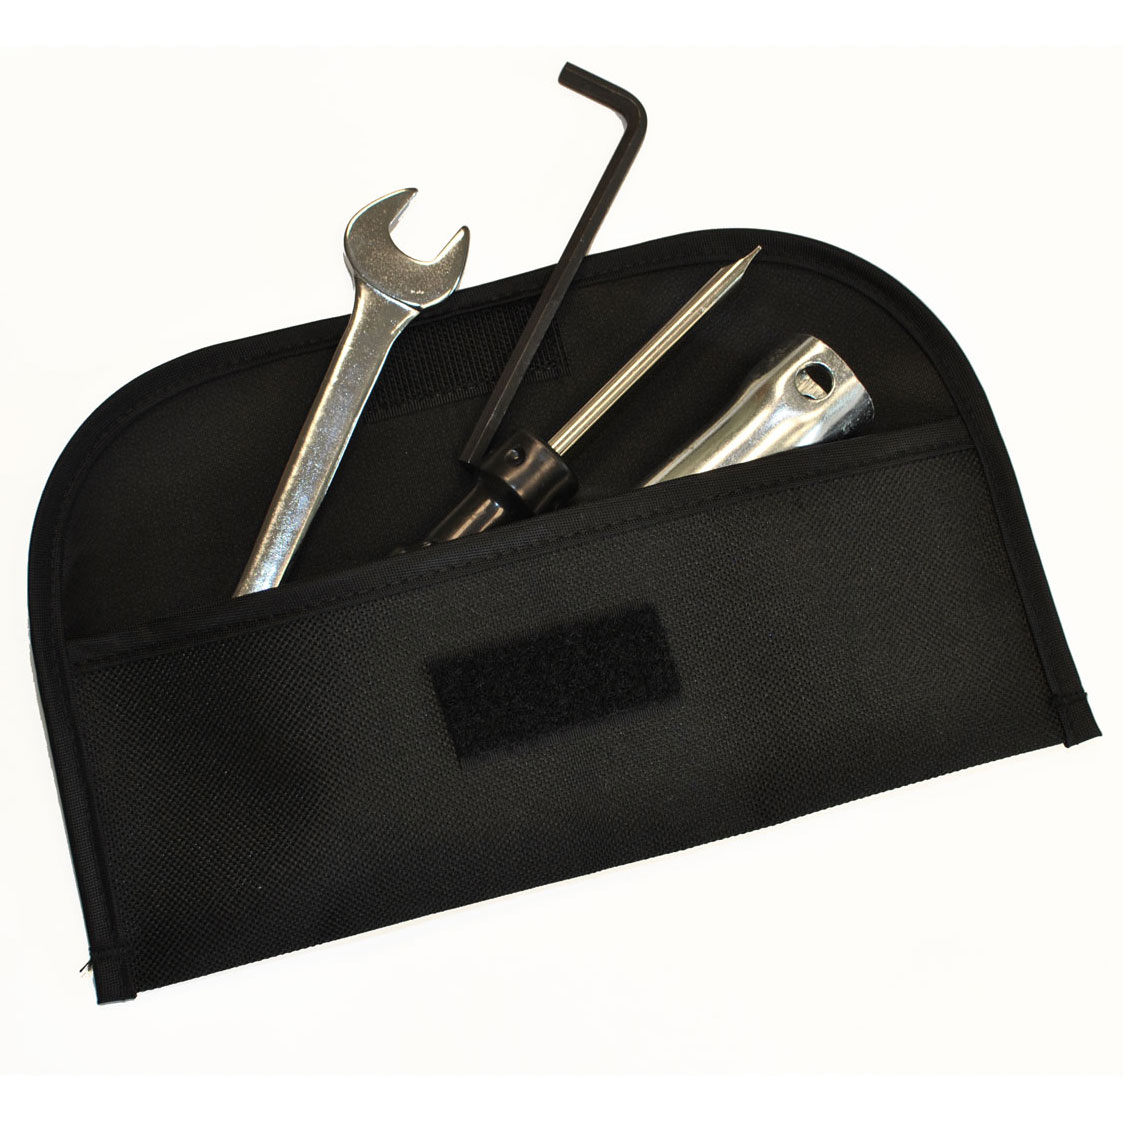 Tool pouch with tools fanned out